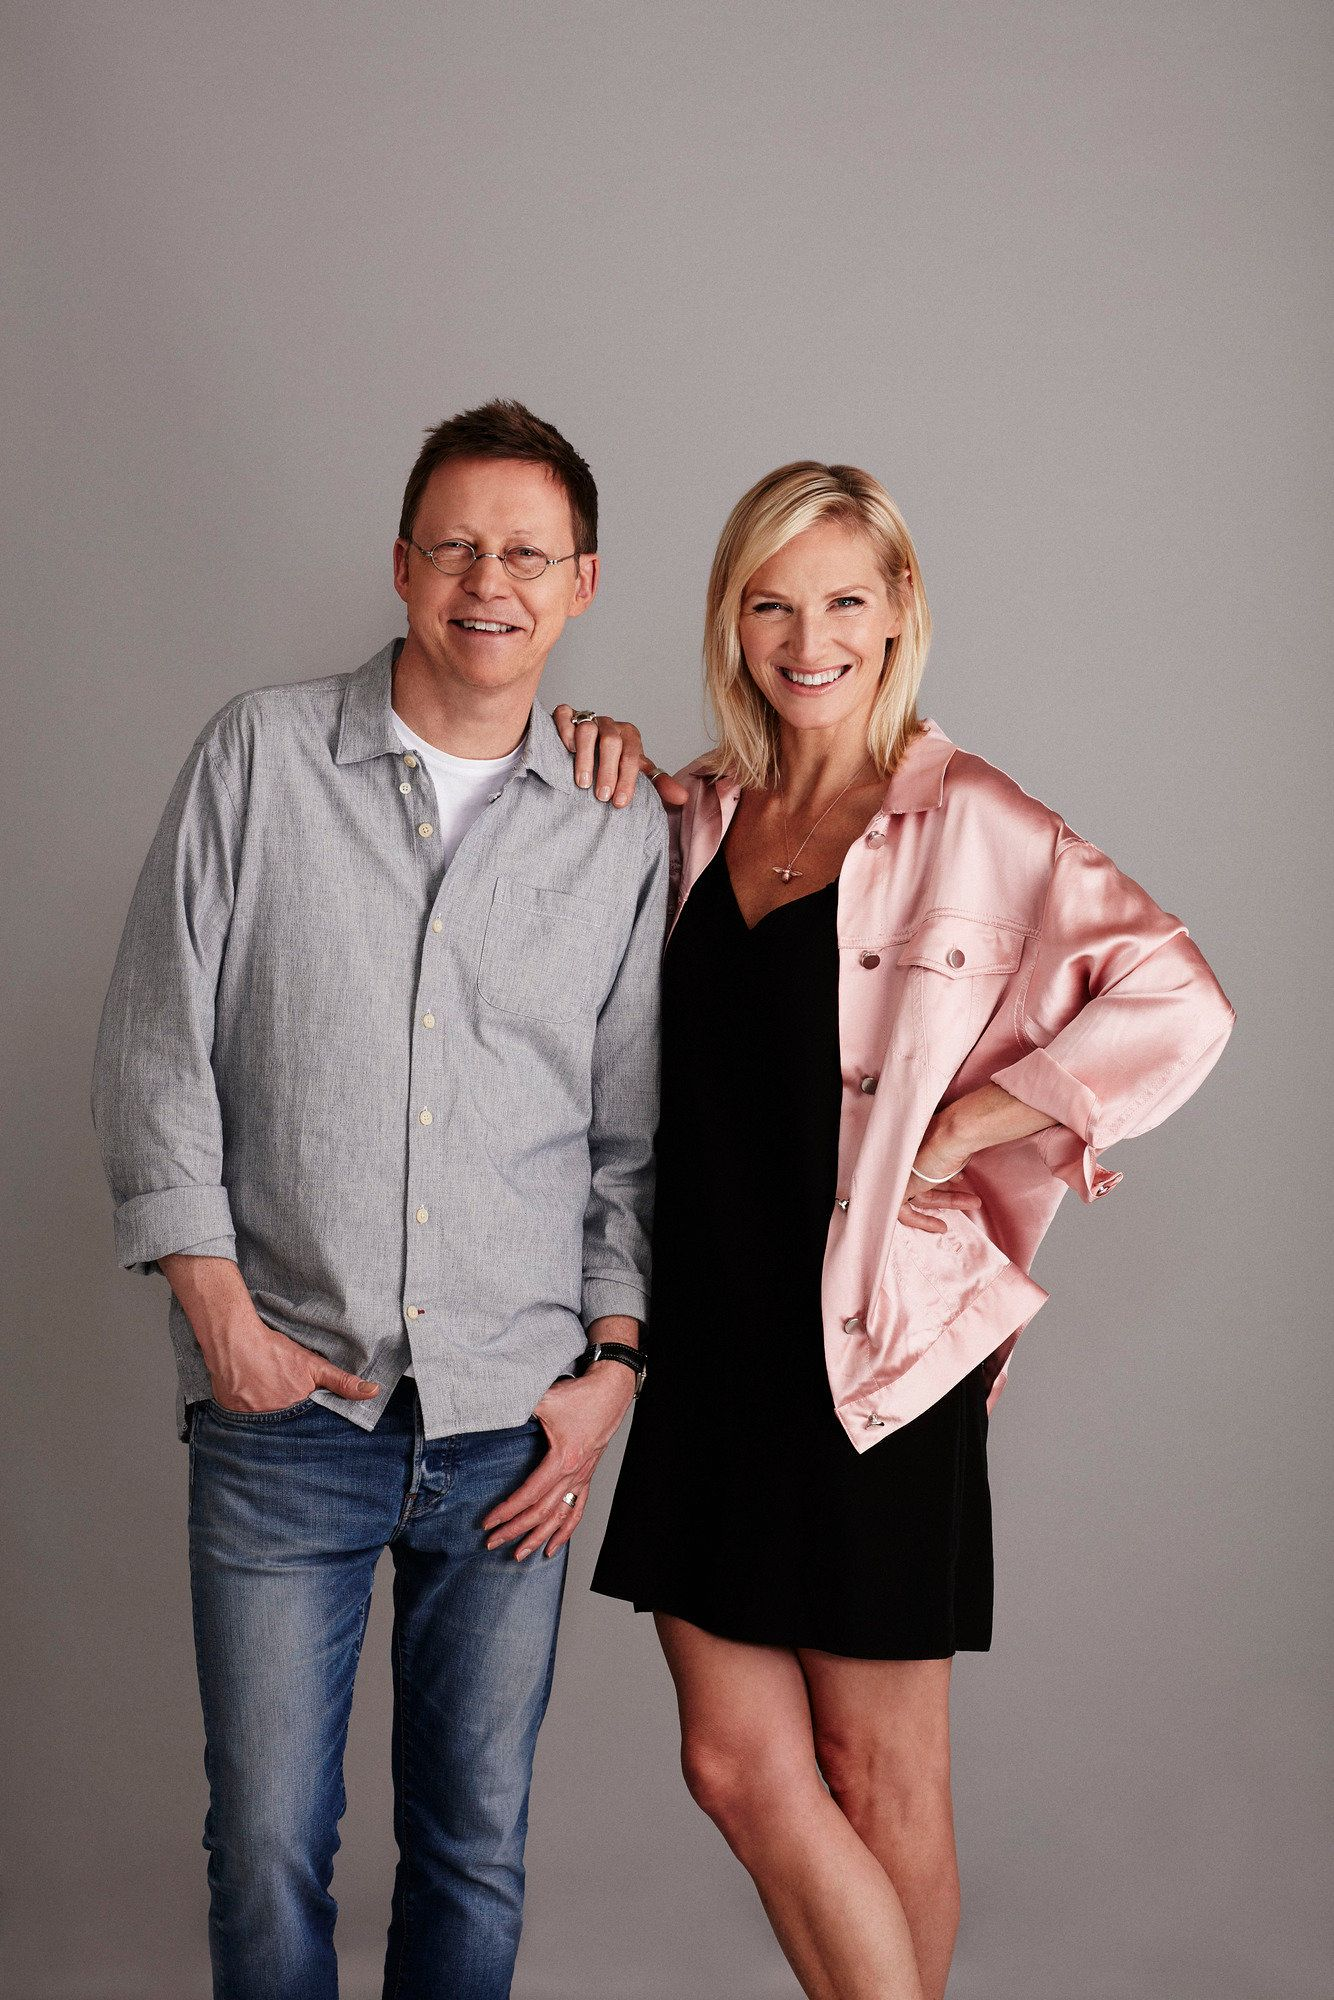 Simon Mayo Calls Out 'Appalling' Abuse Of Jo Whiley After Duo's Radio 2 Drivetime Show Is